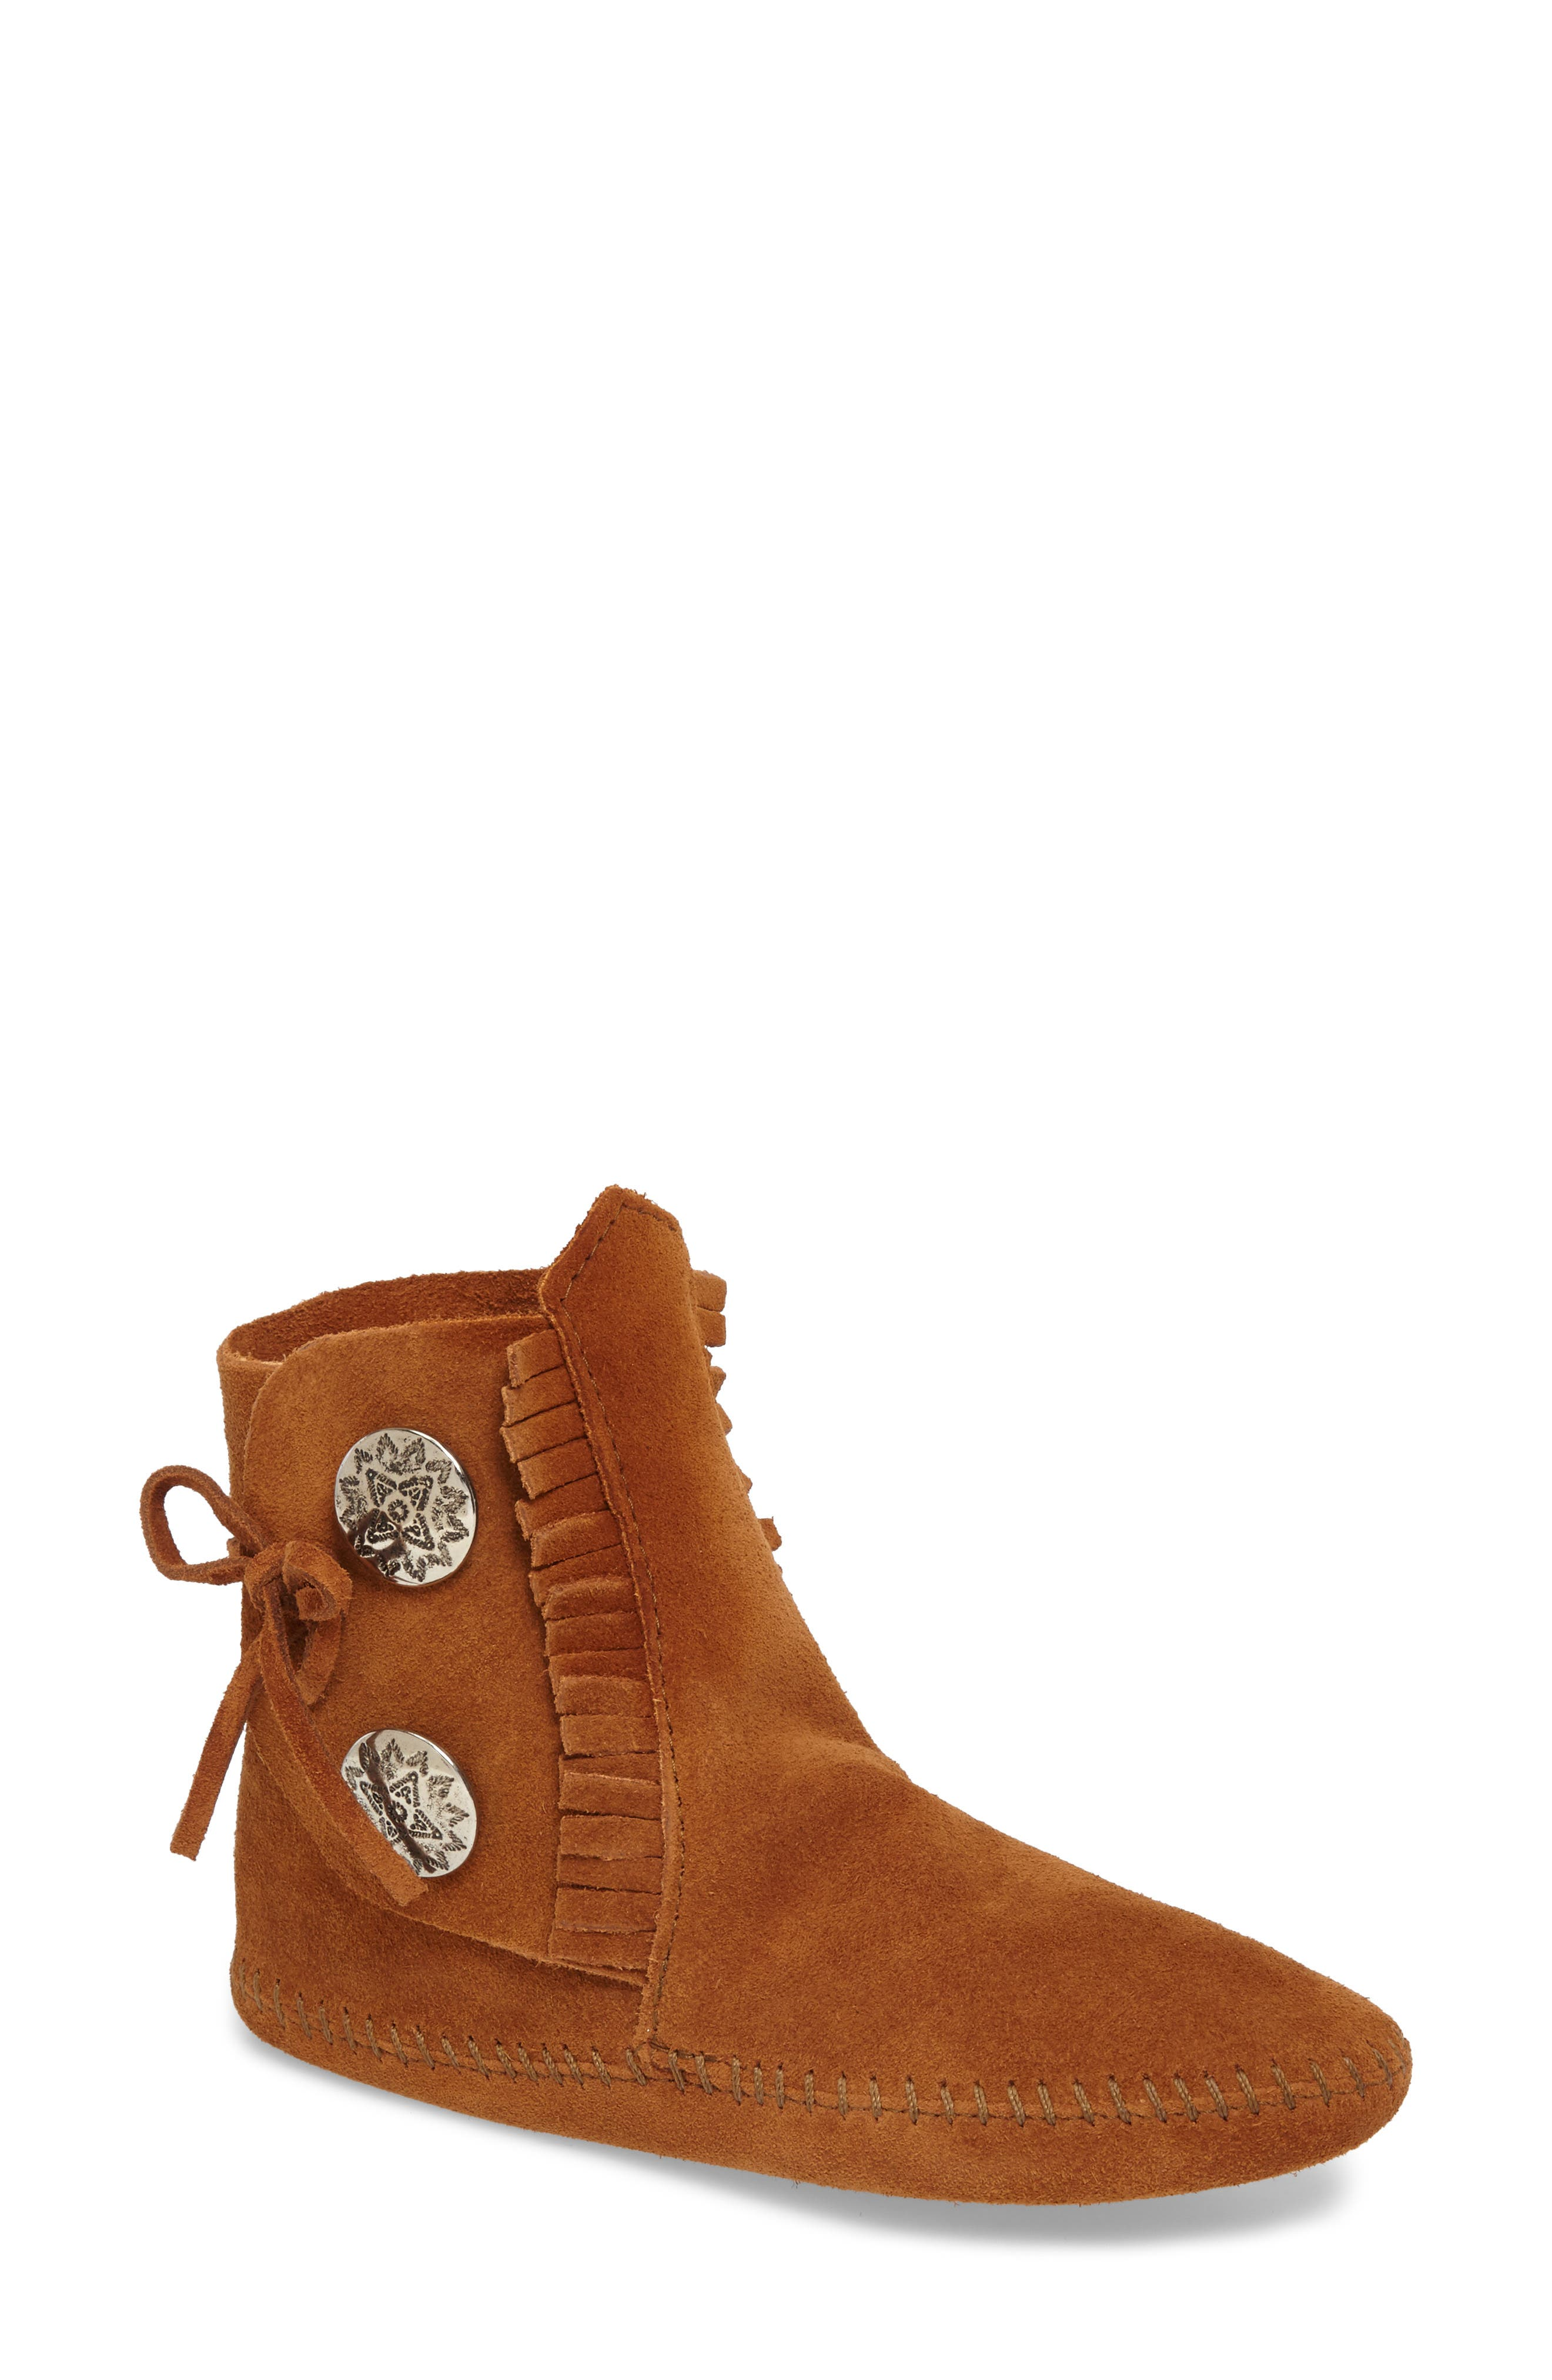 Two-Button Softsole Bootie,                             Main thumbnail 1, color,                             211